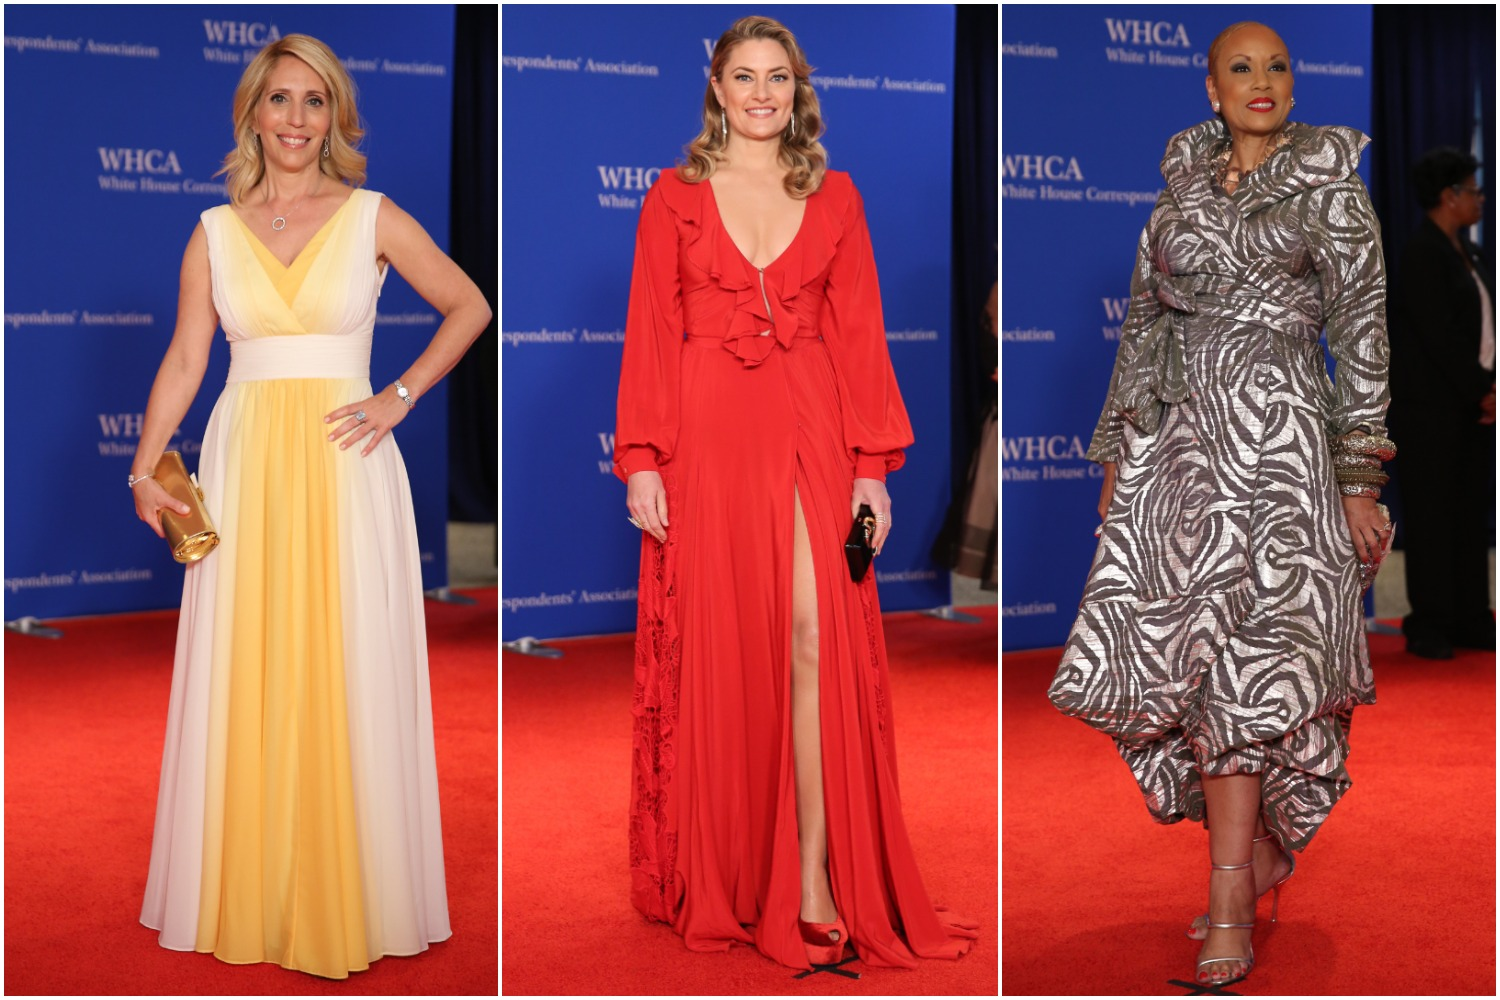 The White House Correspondents' Dinner is a chance for media figures, politicians and other luminaries to put on their best outfits and party the night away. Some came to the red carpet to slay, but others didn't exactly deliver.{ }(Amanda Andrade-Rhoades/DC Refined)